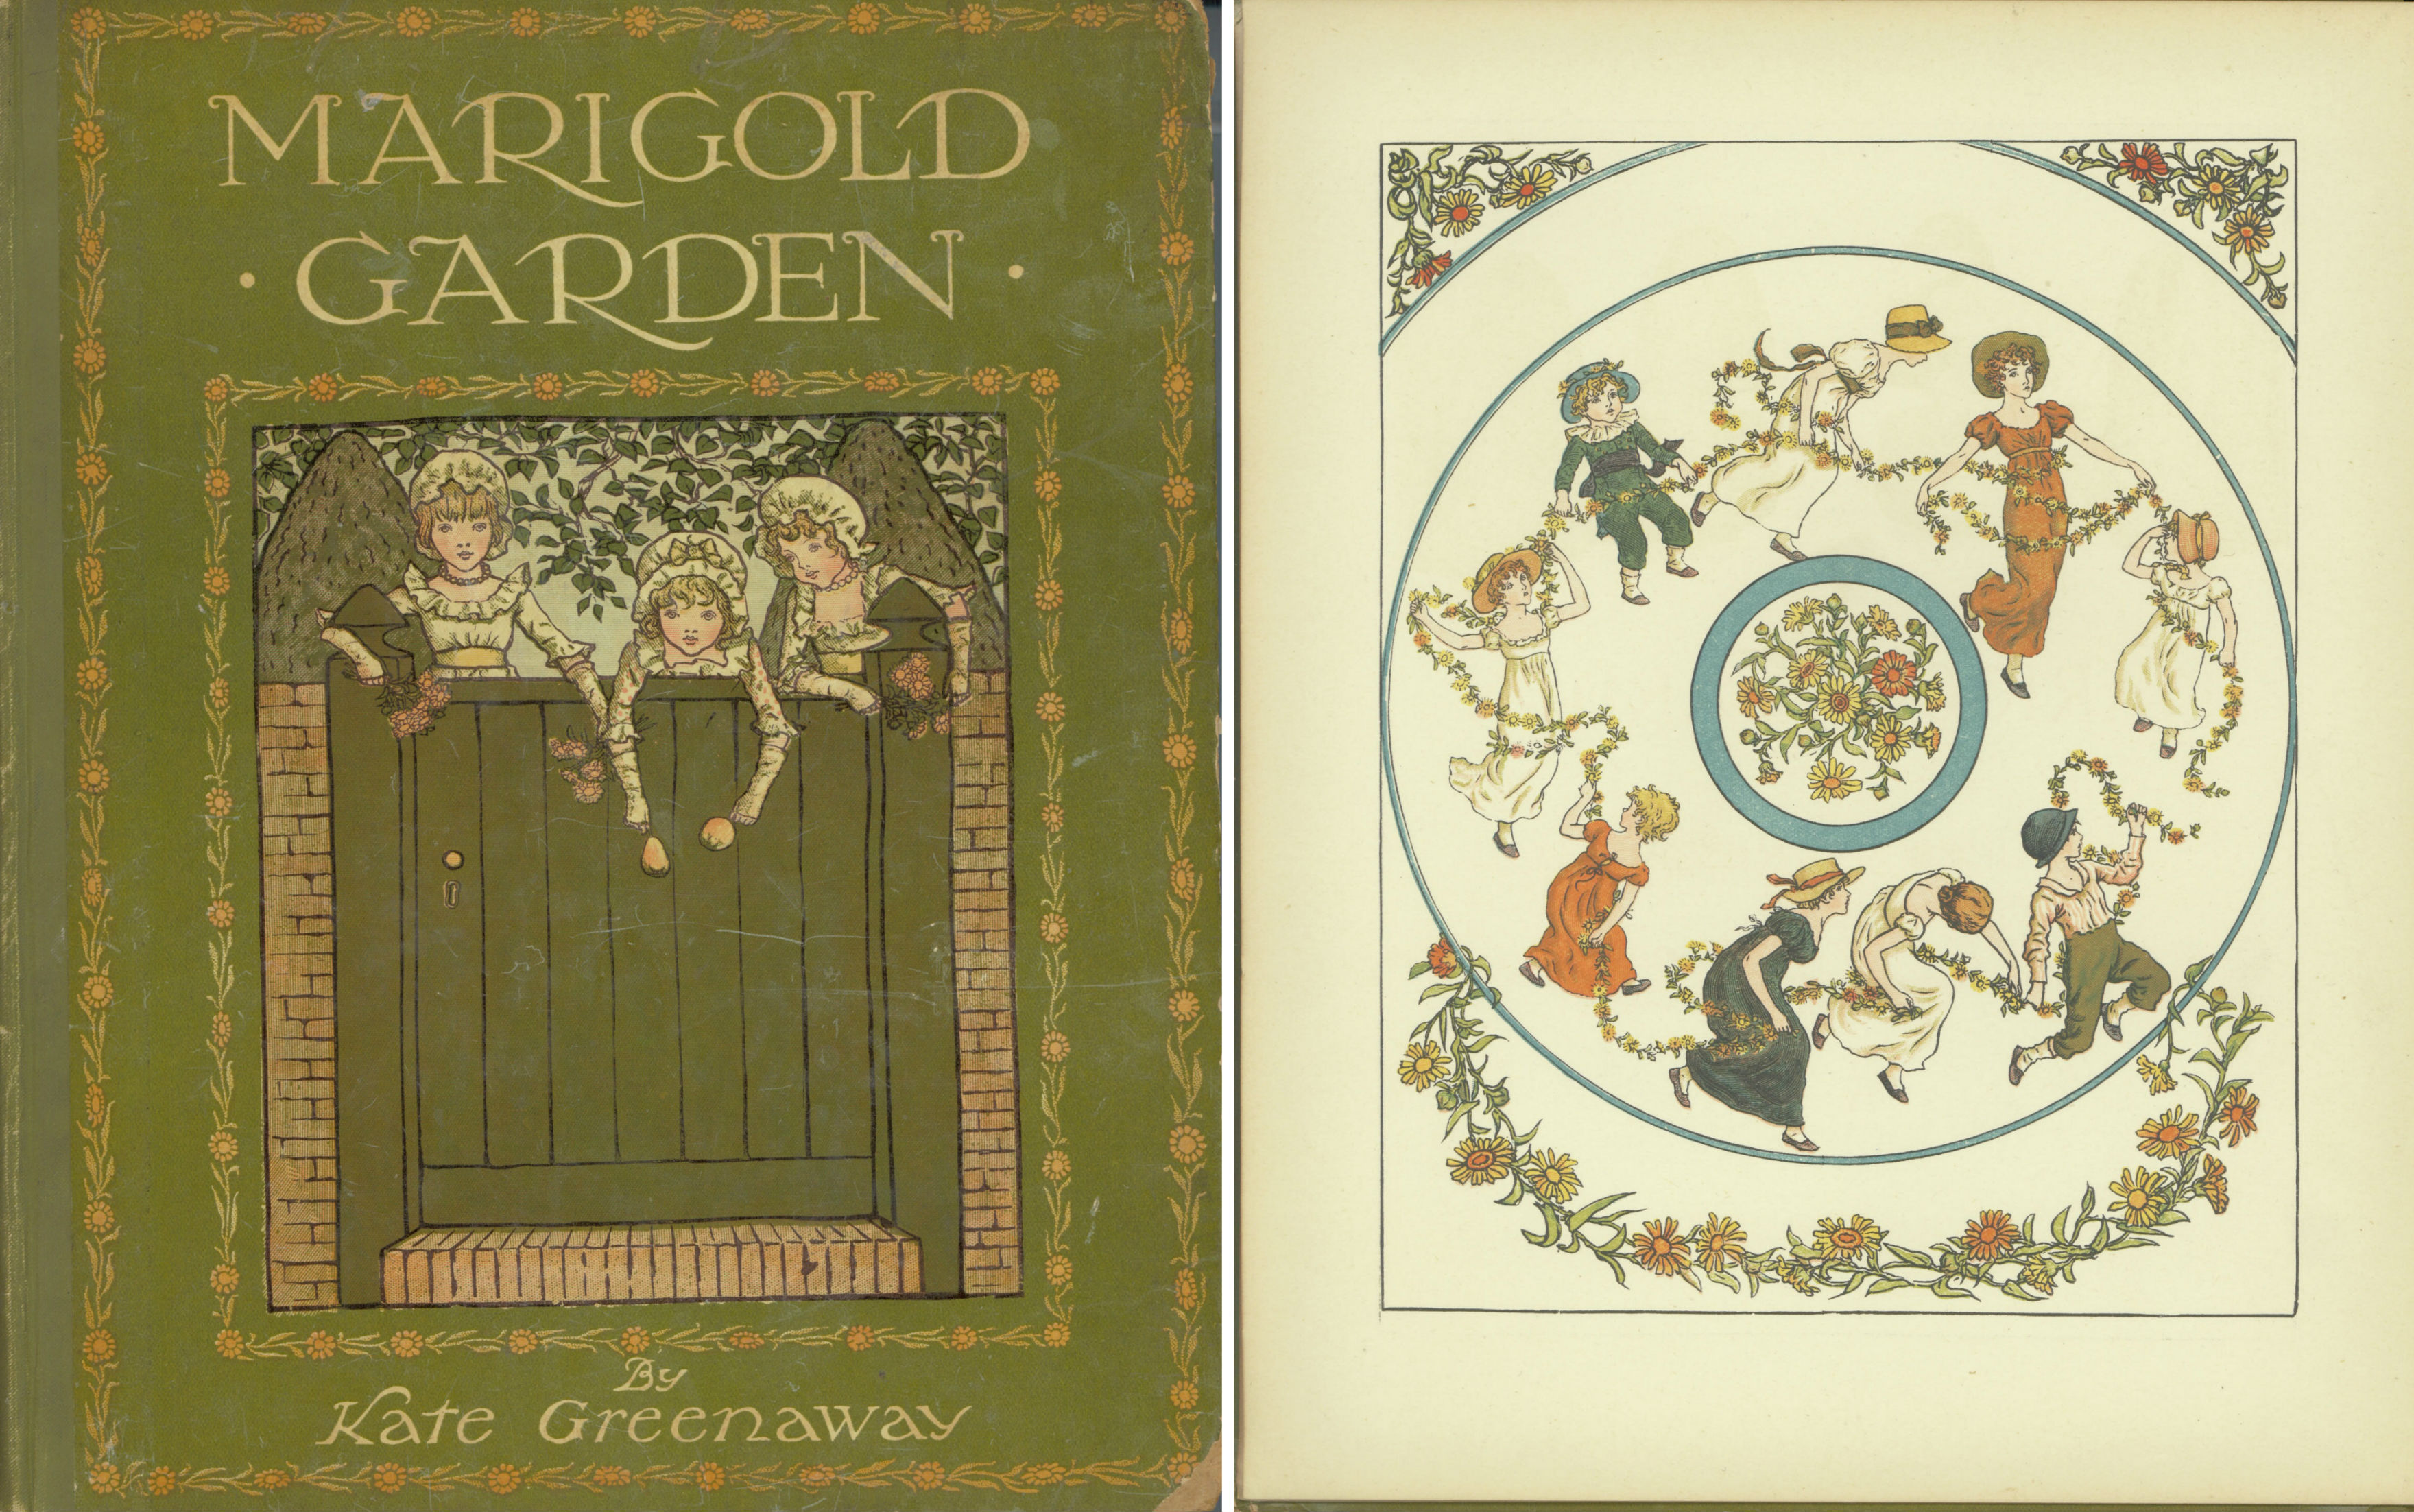 Cover and frontpiece of Marigold Garden by Kate Greenaway